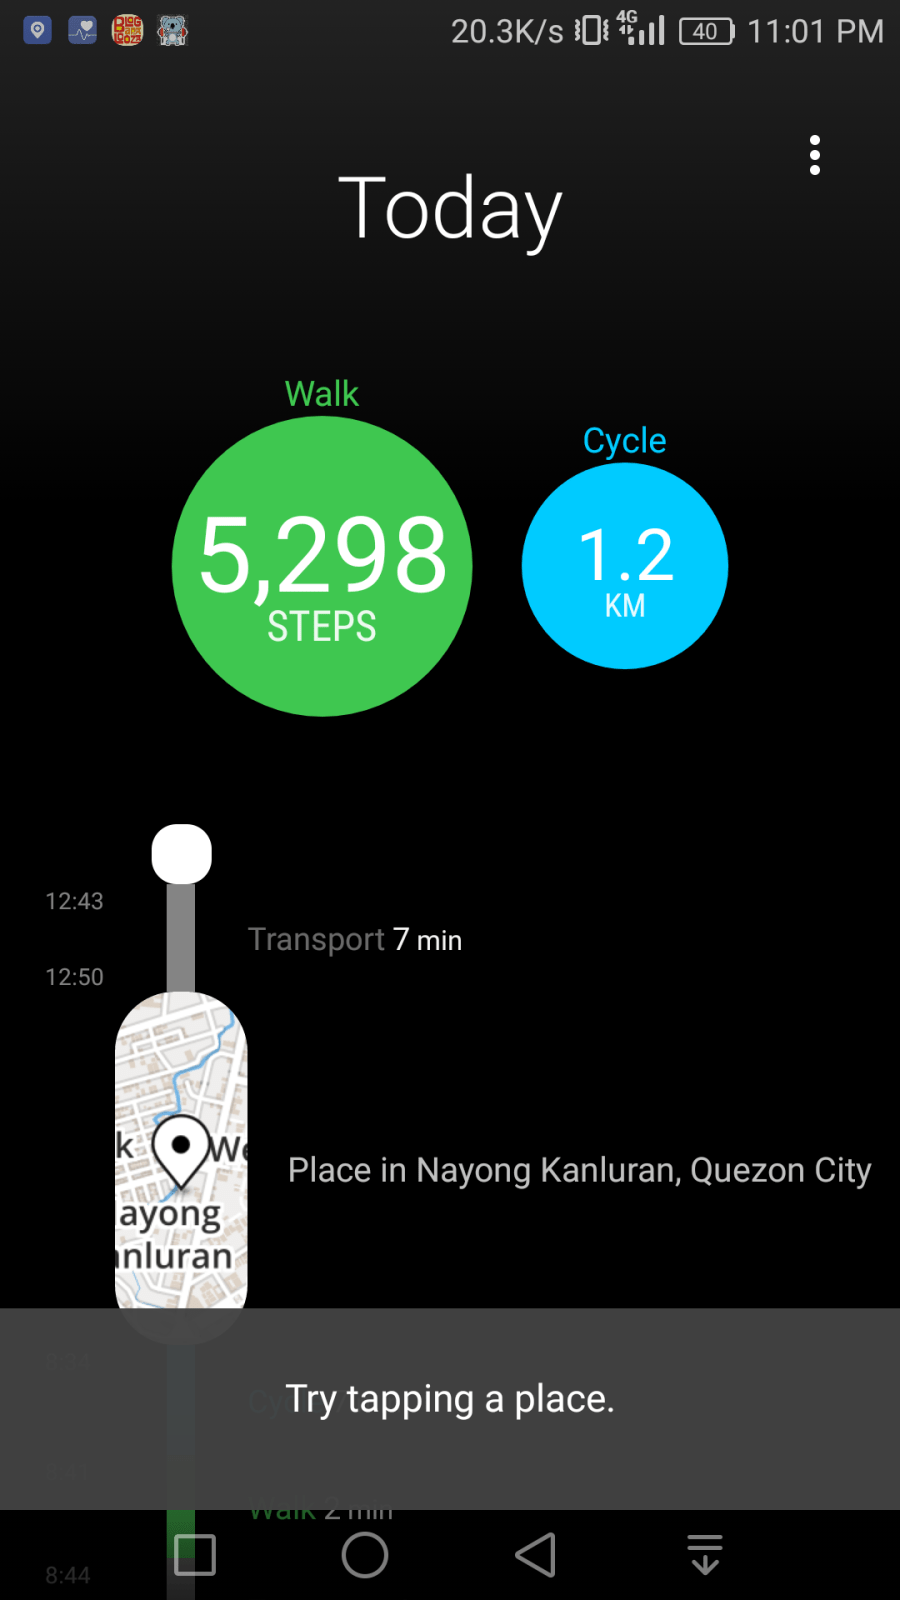 philam vitality app screenshot